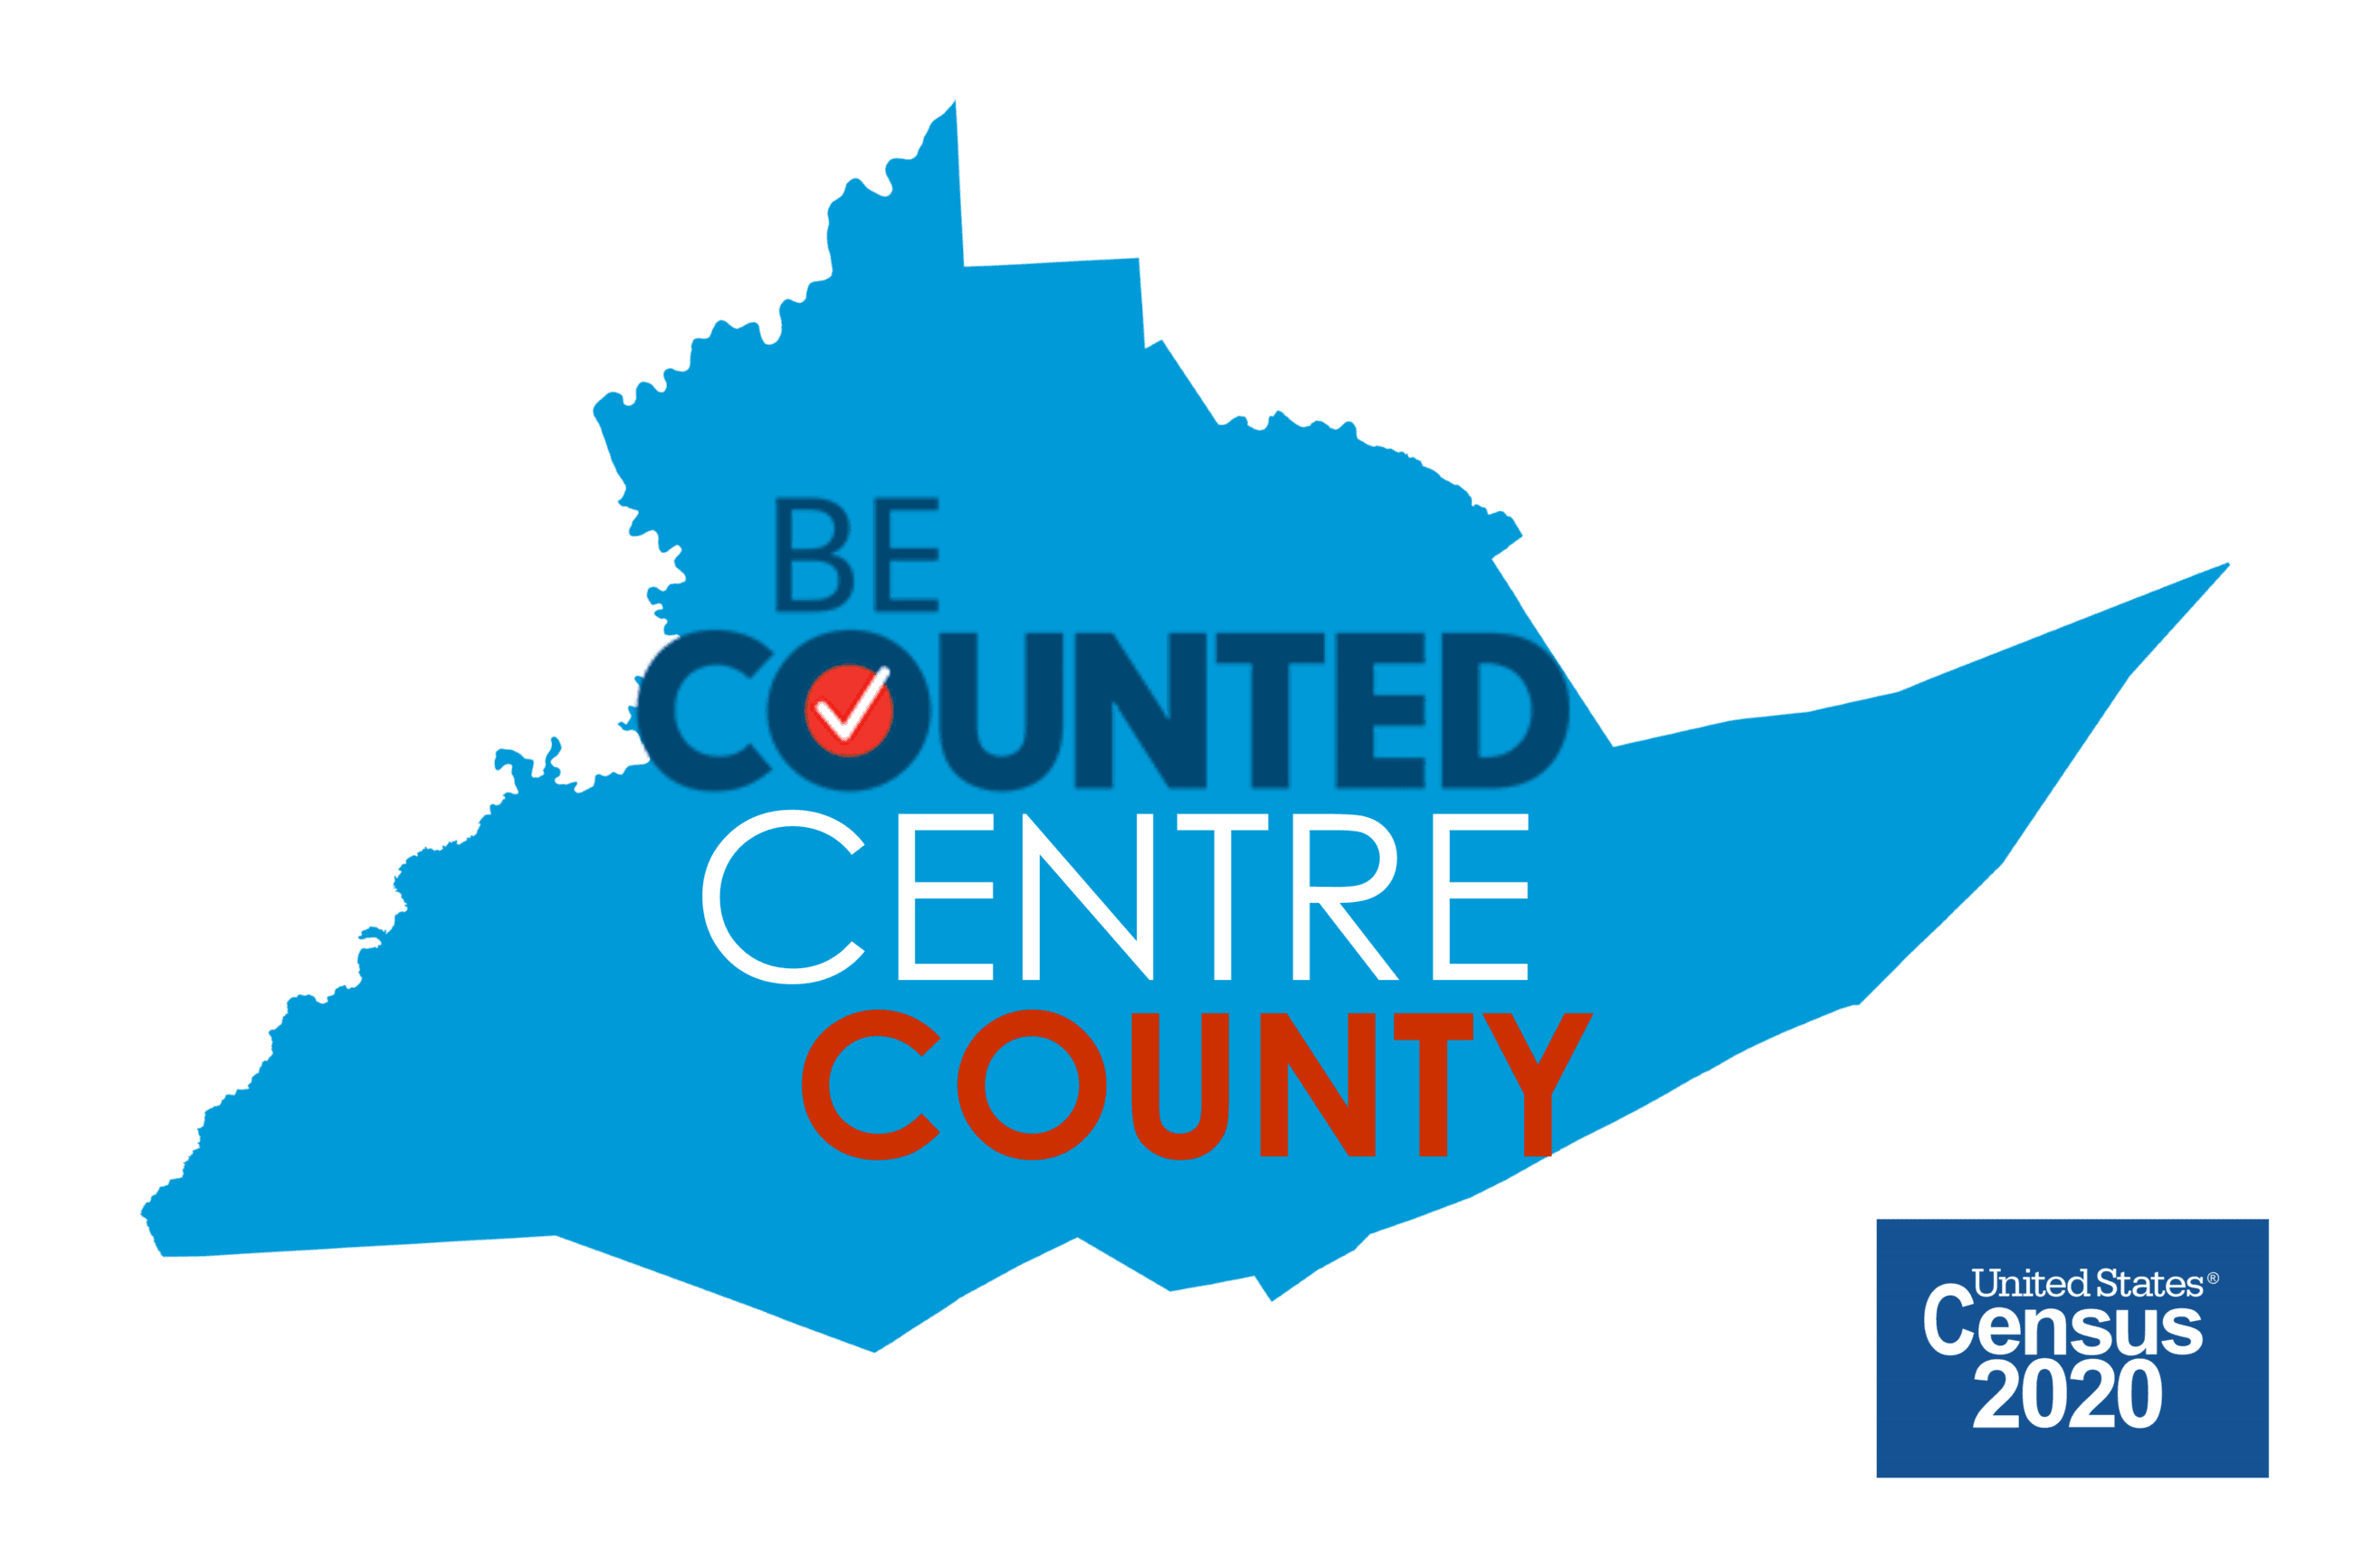 BeCounted_CentreCounty